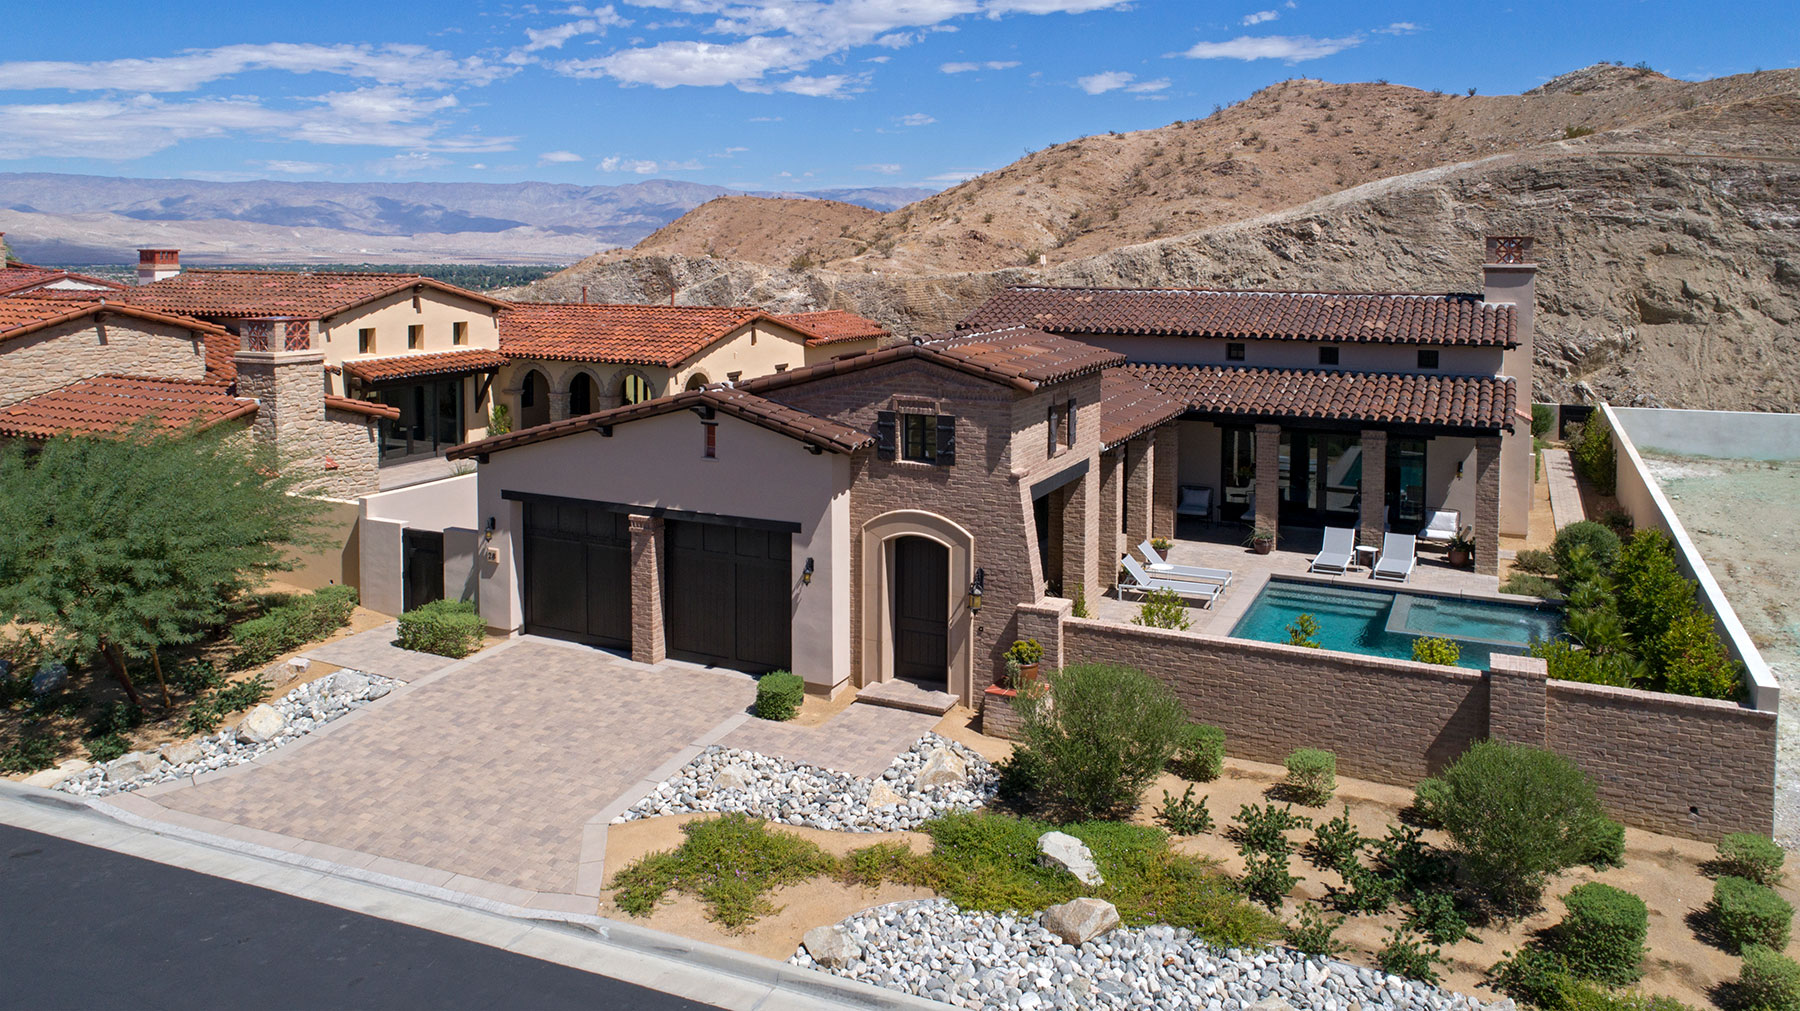 واحد منزل الأسرة للـ Sale في 28 Santa Rosa Mountain Rancho Mirage, California, 92270 United States